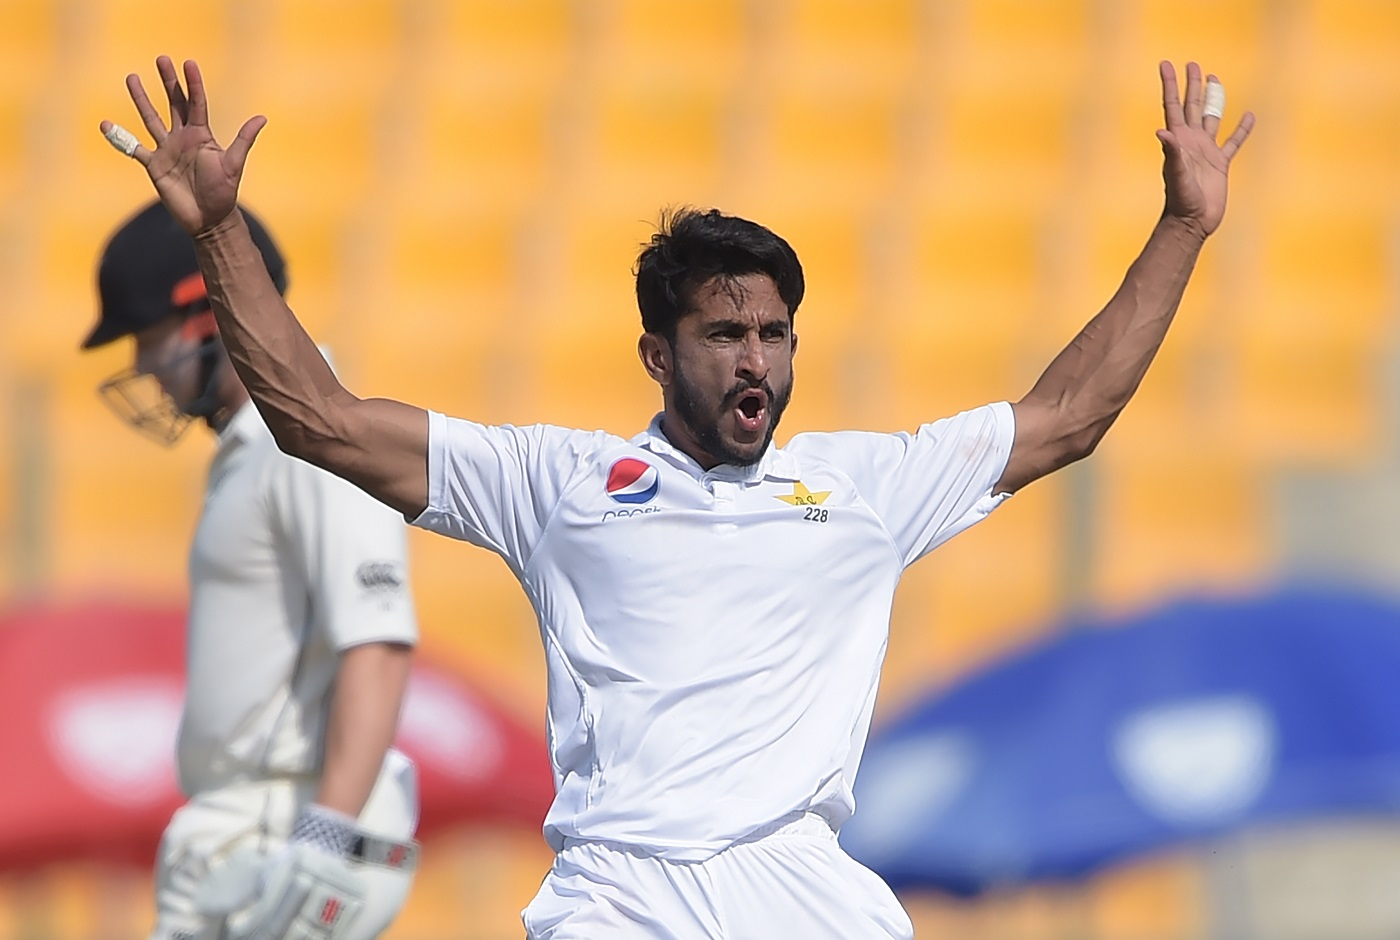 Hasan Ali and Yasir Shah take five-wicket hauls, Pakistan need 176 to win the first Test against New Zealand